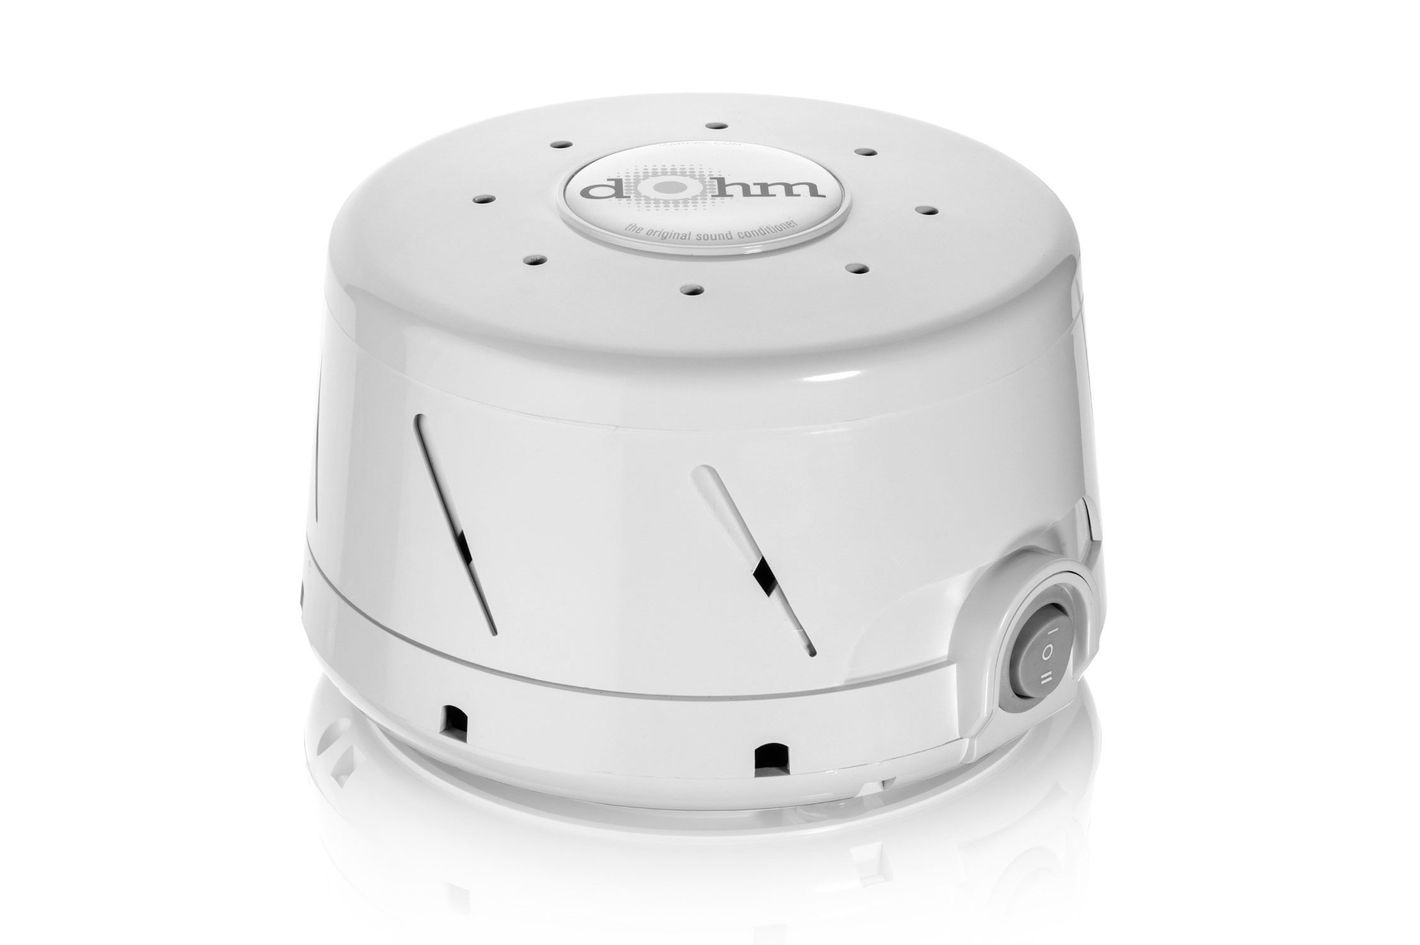 Marpac Dohm Natural Sound Machine